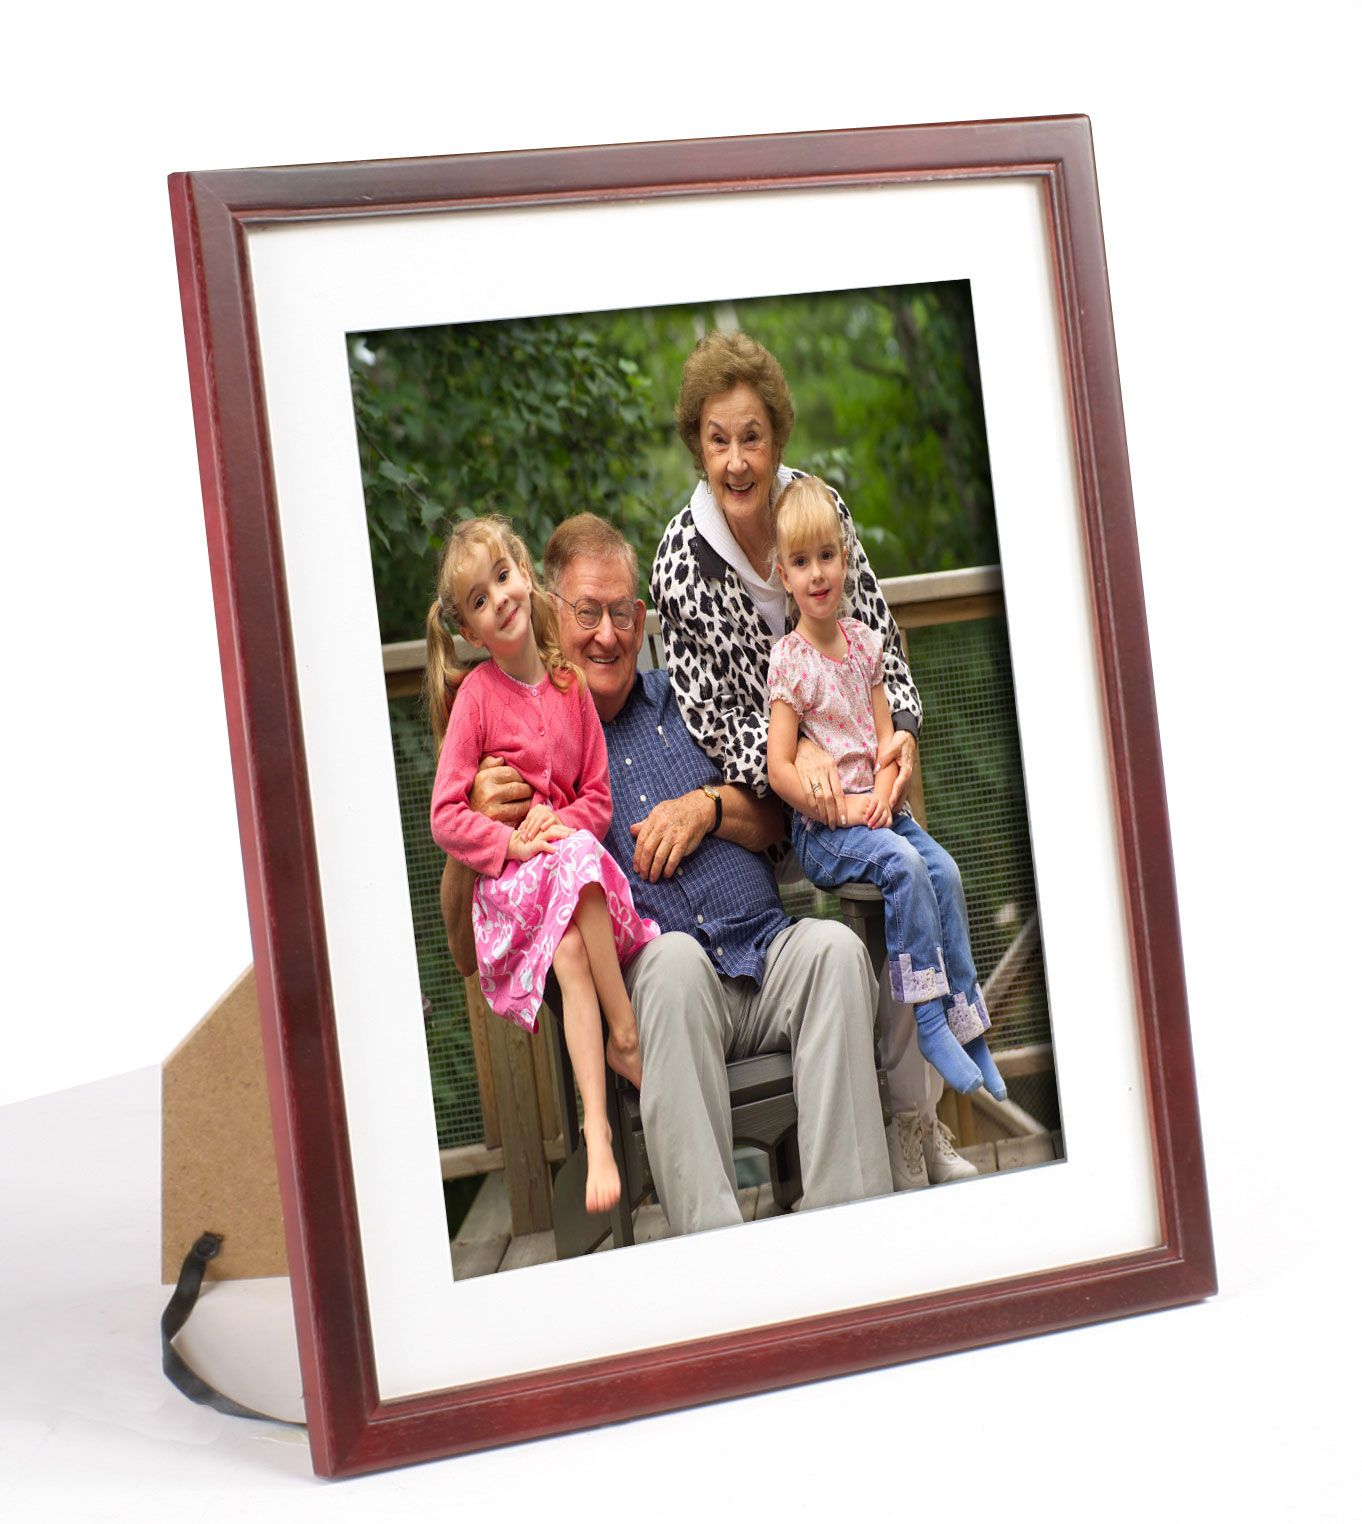 105 X 13 Wood Picture Frame For Table Or Wall Matted To 85 X 11